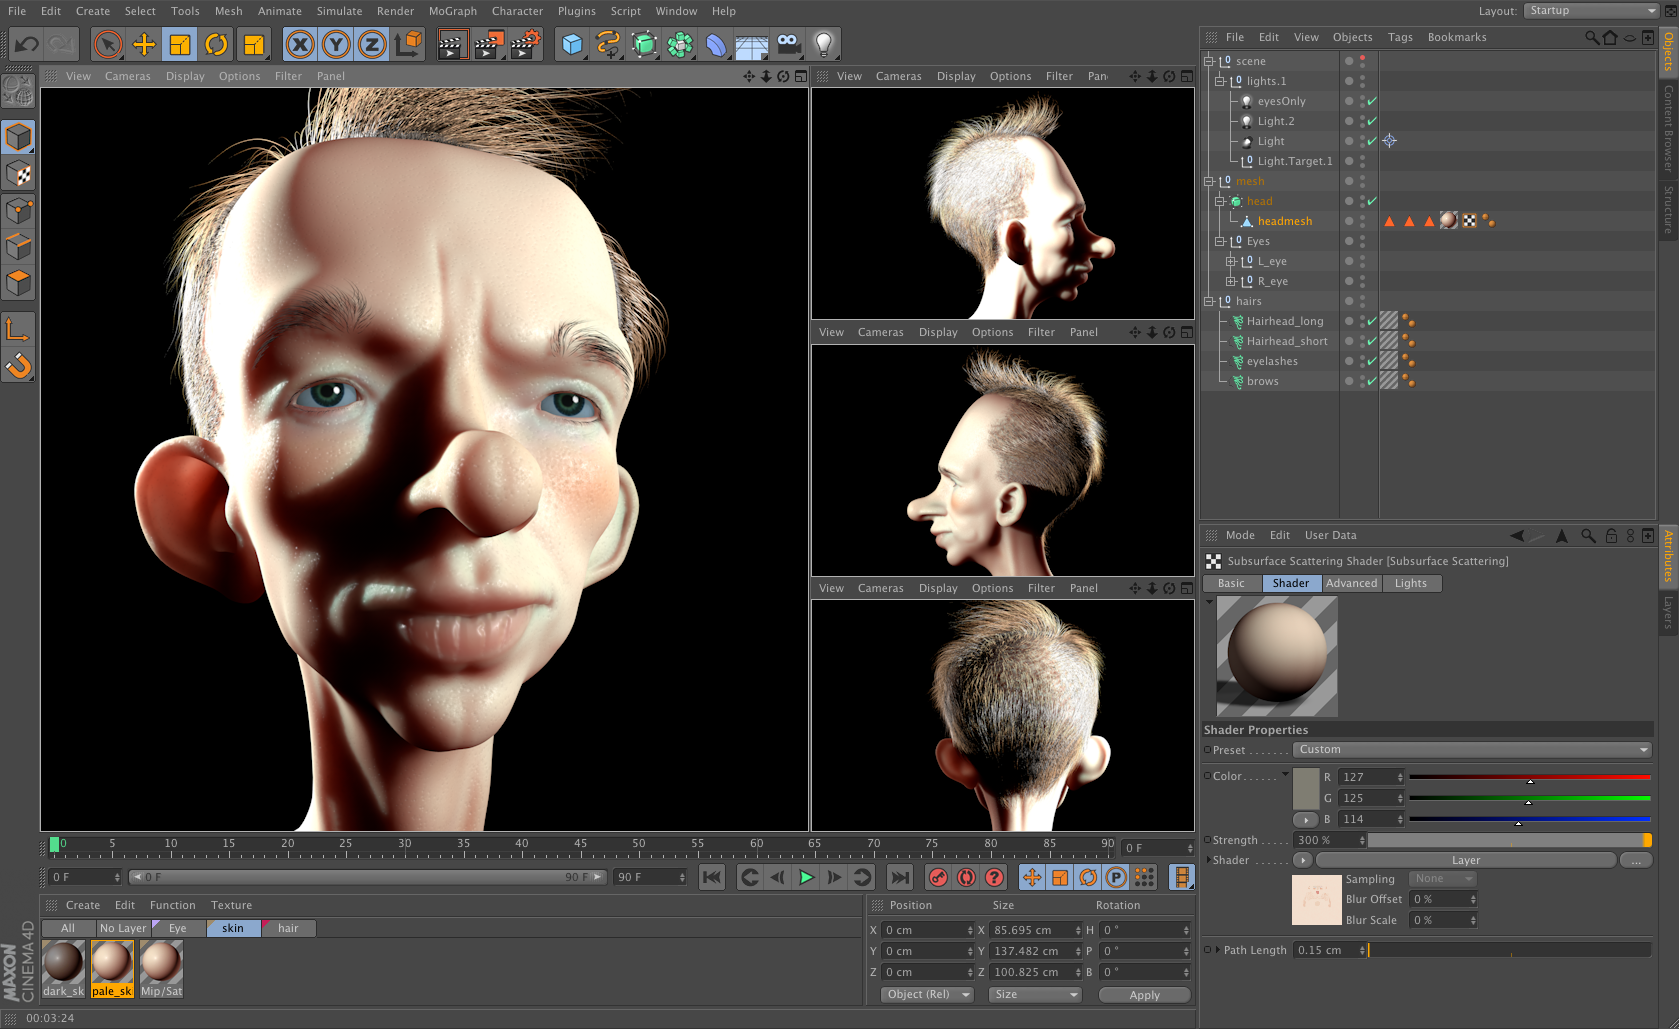 Cinema 4D - Top 3D Animation Software that Professionals Should Look At